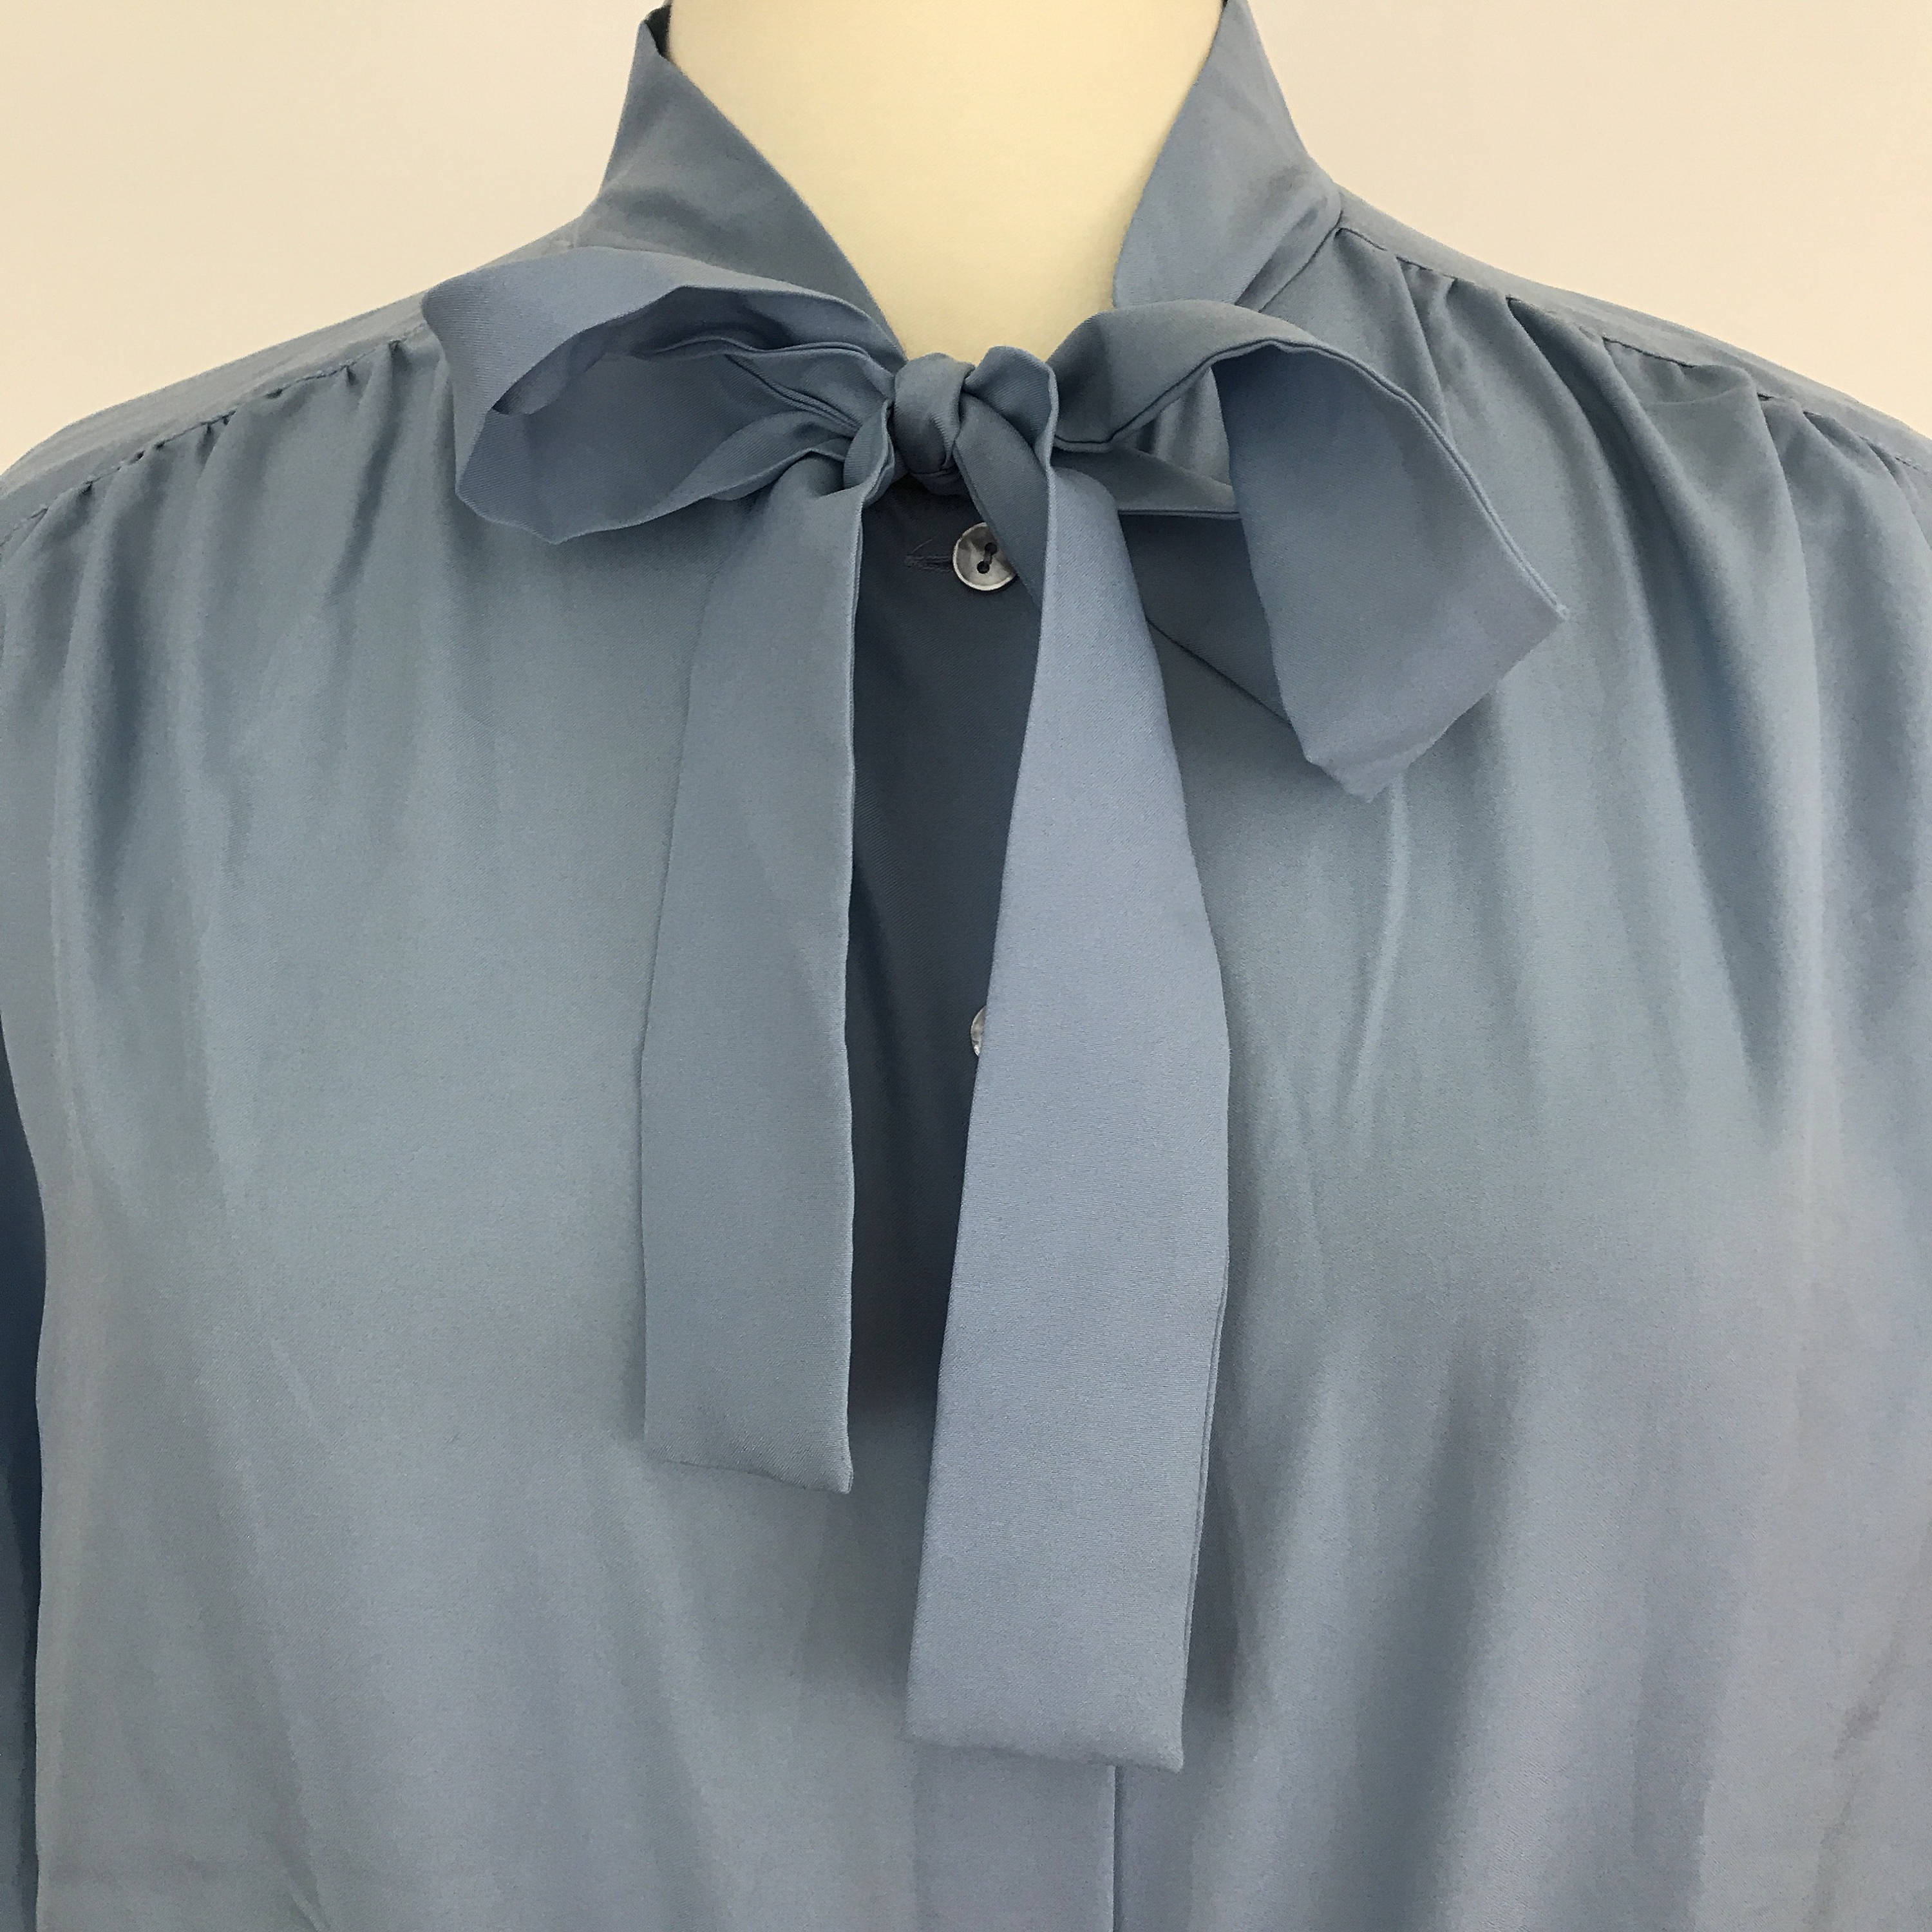 05275694ec5686 Vintage blue blouse bow tie shirt 1970s made 50s 40s style sexy ...